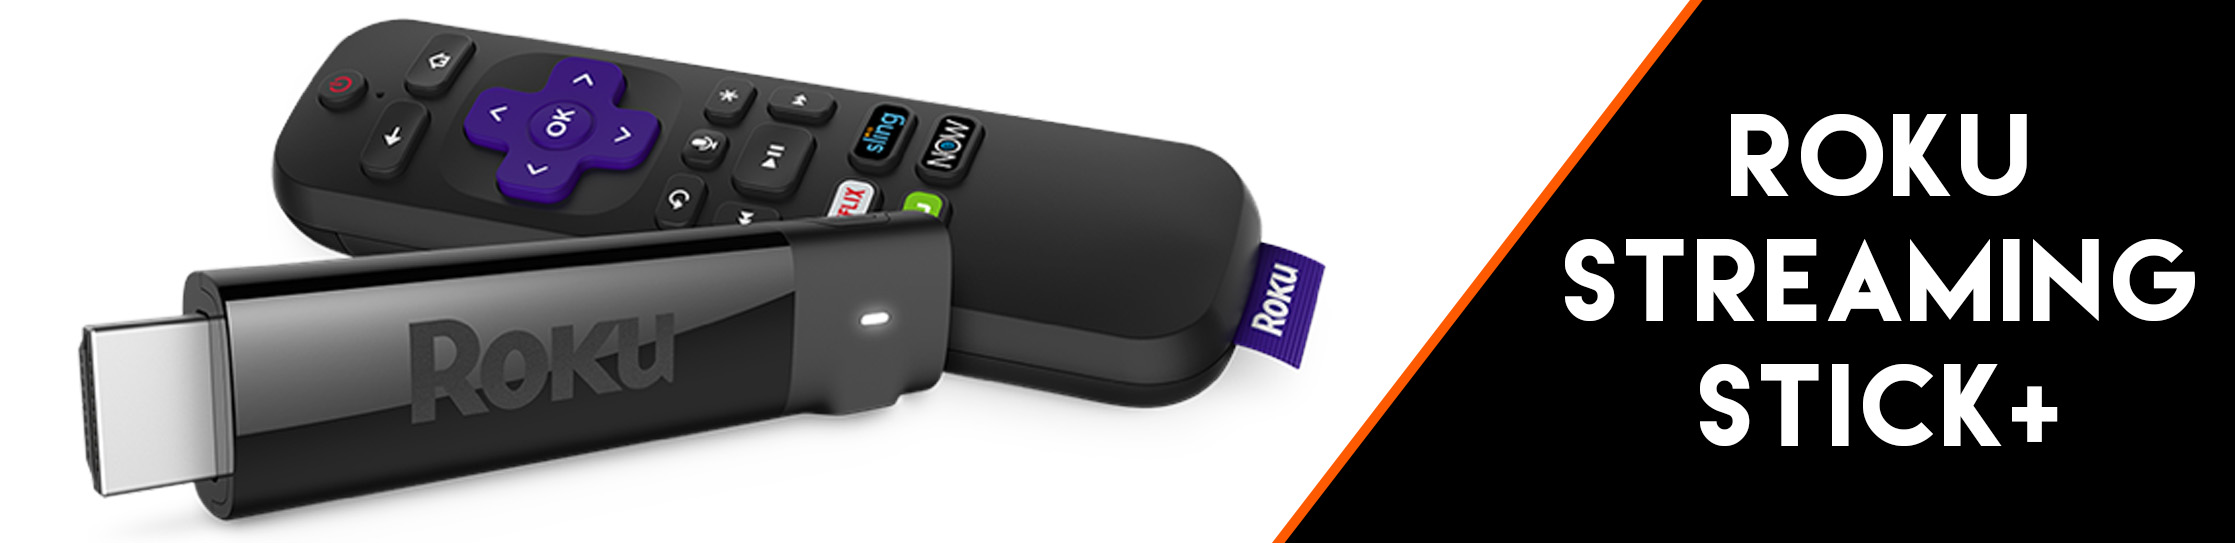 Roku Streaming Stick+ 4k